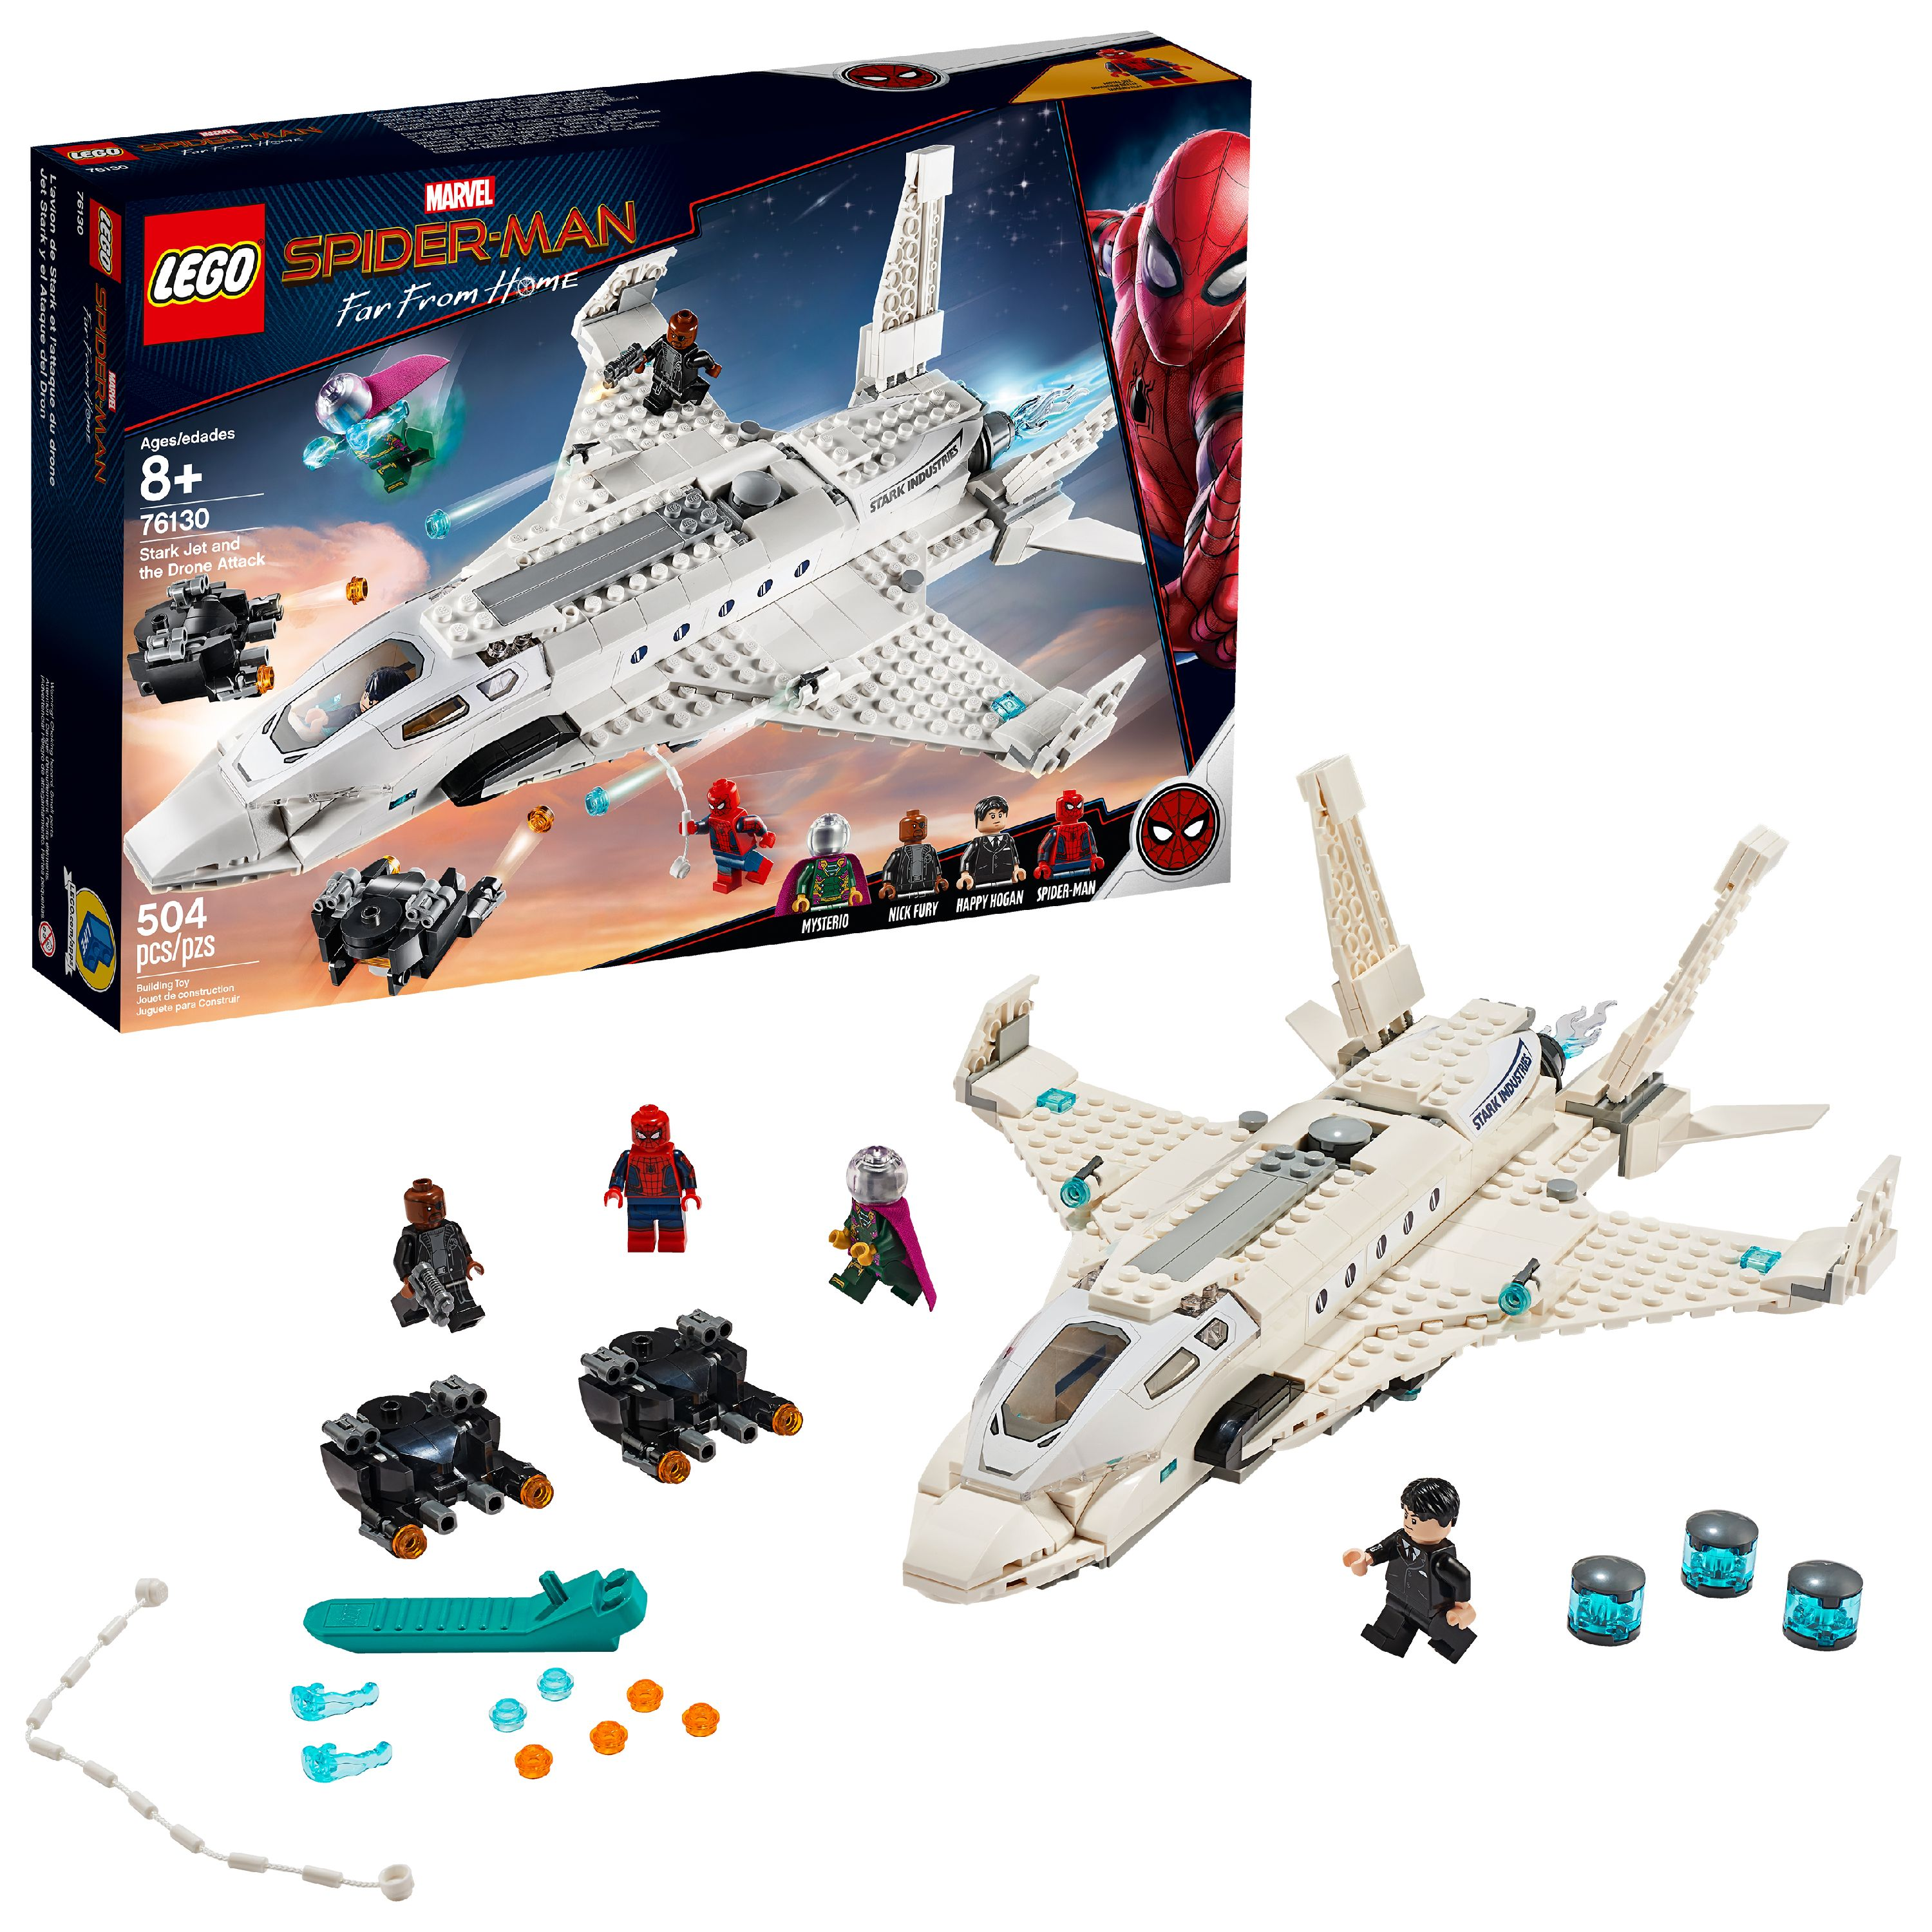 LEGO Marvel Spider-Man Far From Home: Stark Jet and the Drone Attack Superhero Set 76130